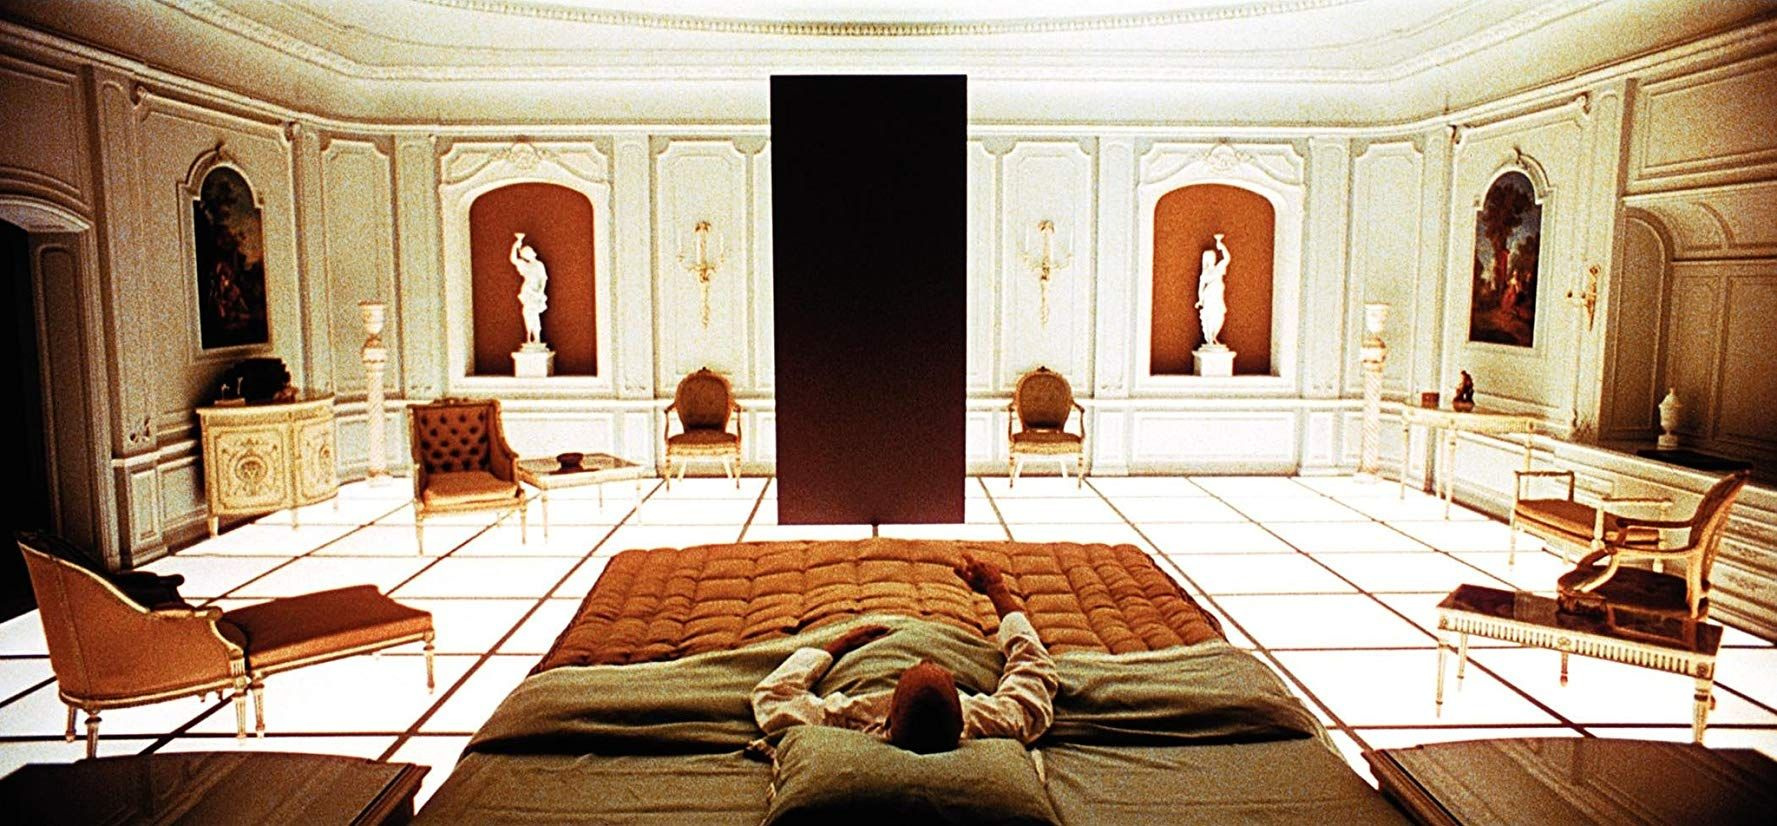 2001-a-space-odyssey-bedroom